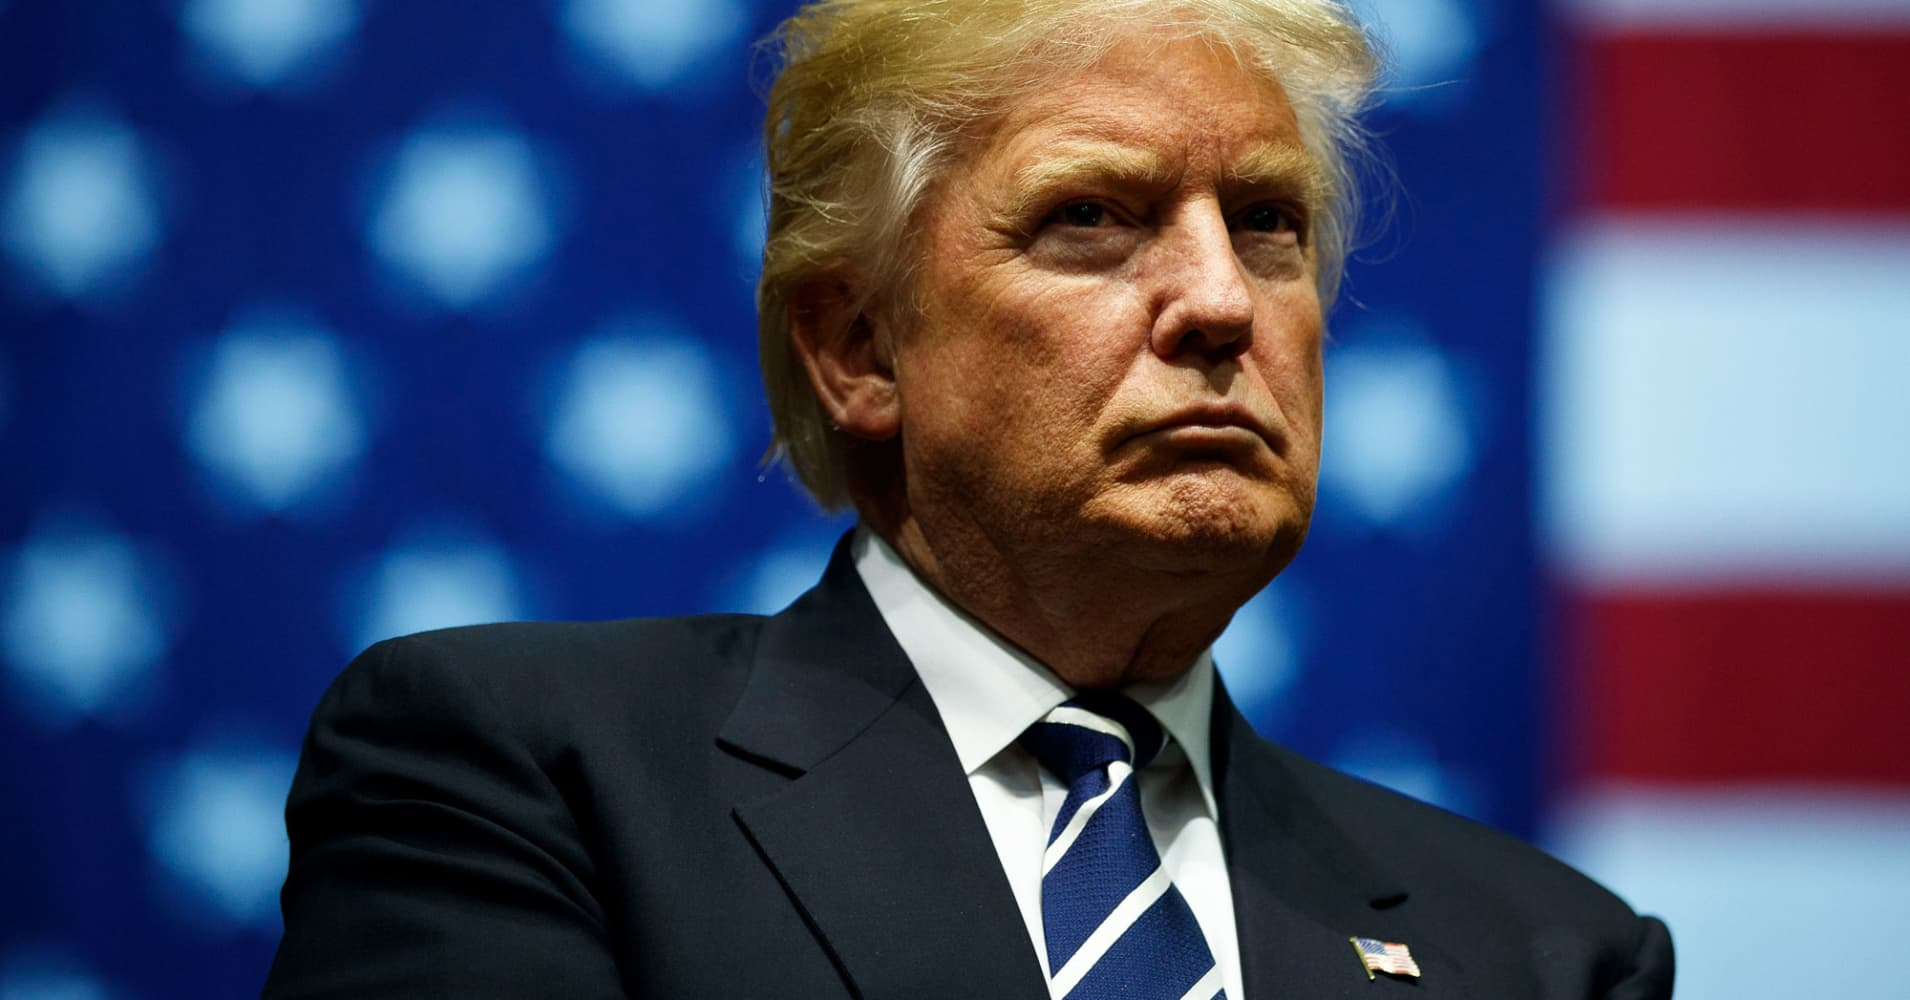 Trump backs $750 billion defense budget request to Congress, says US official